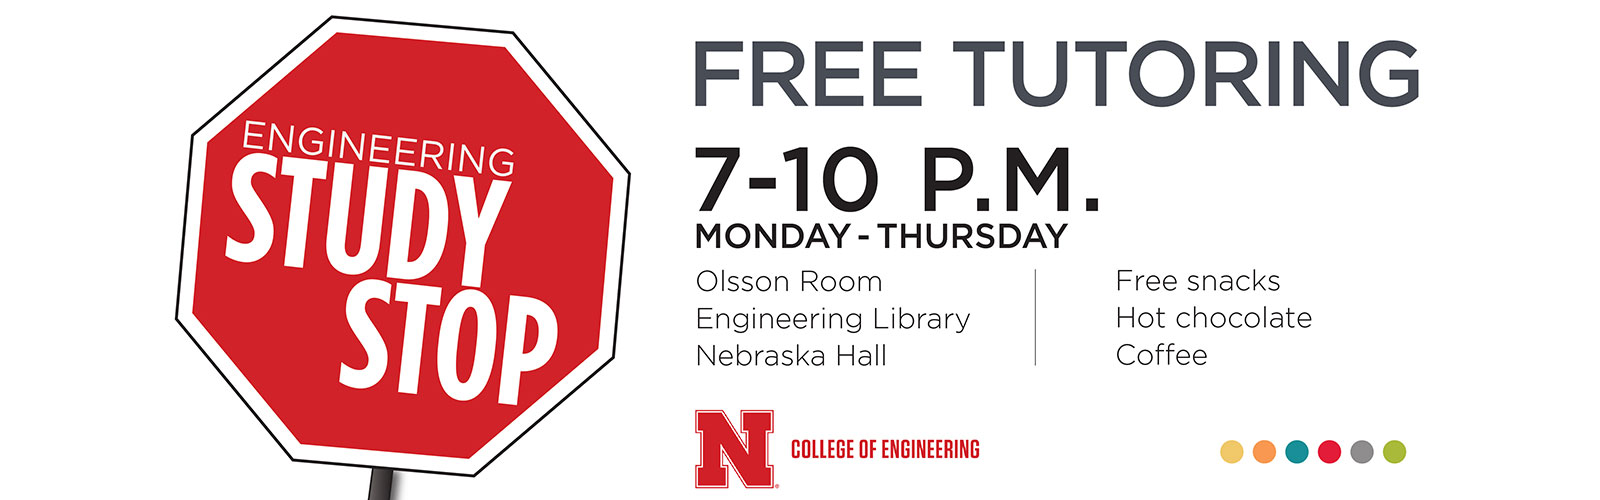 Engineering Study Stop - Free Tutoring. 7-10pm Monday-Thursday. Olsson Room, Engineering Library, Nebraska Hall. Free snacks, Hot Chocolate and coffee.